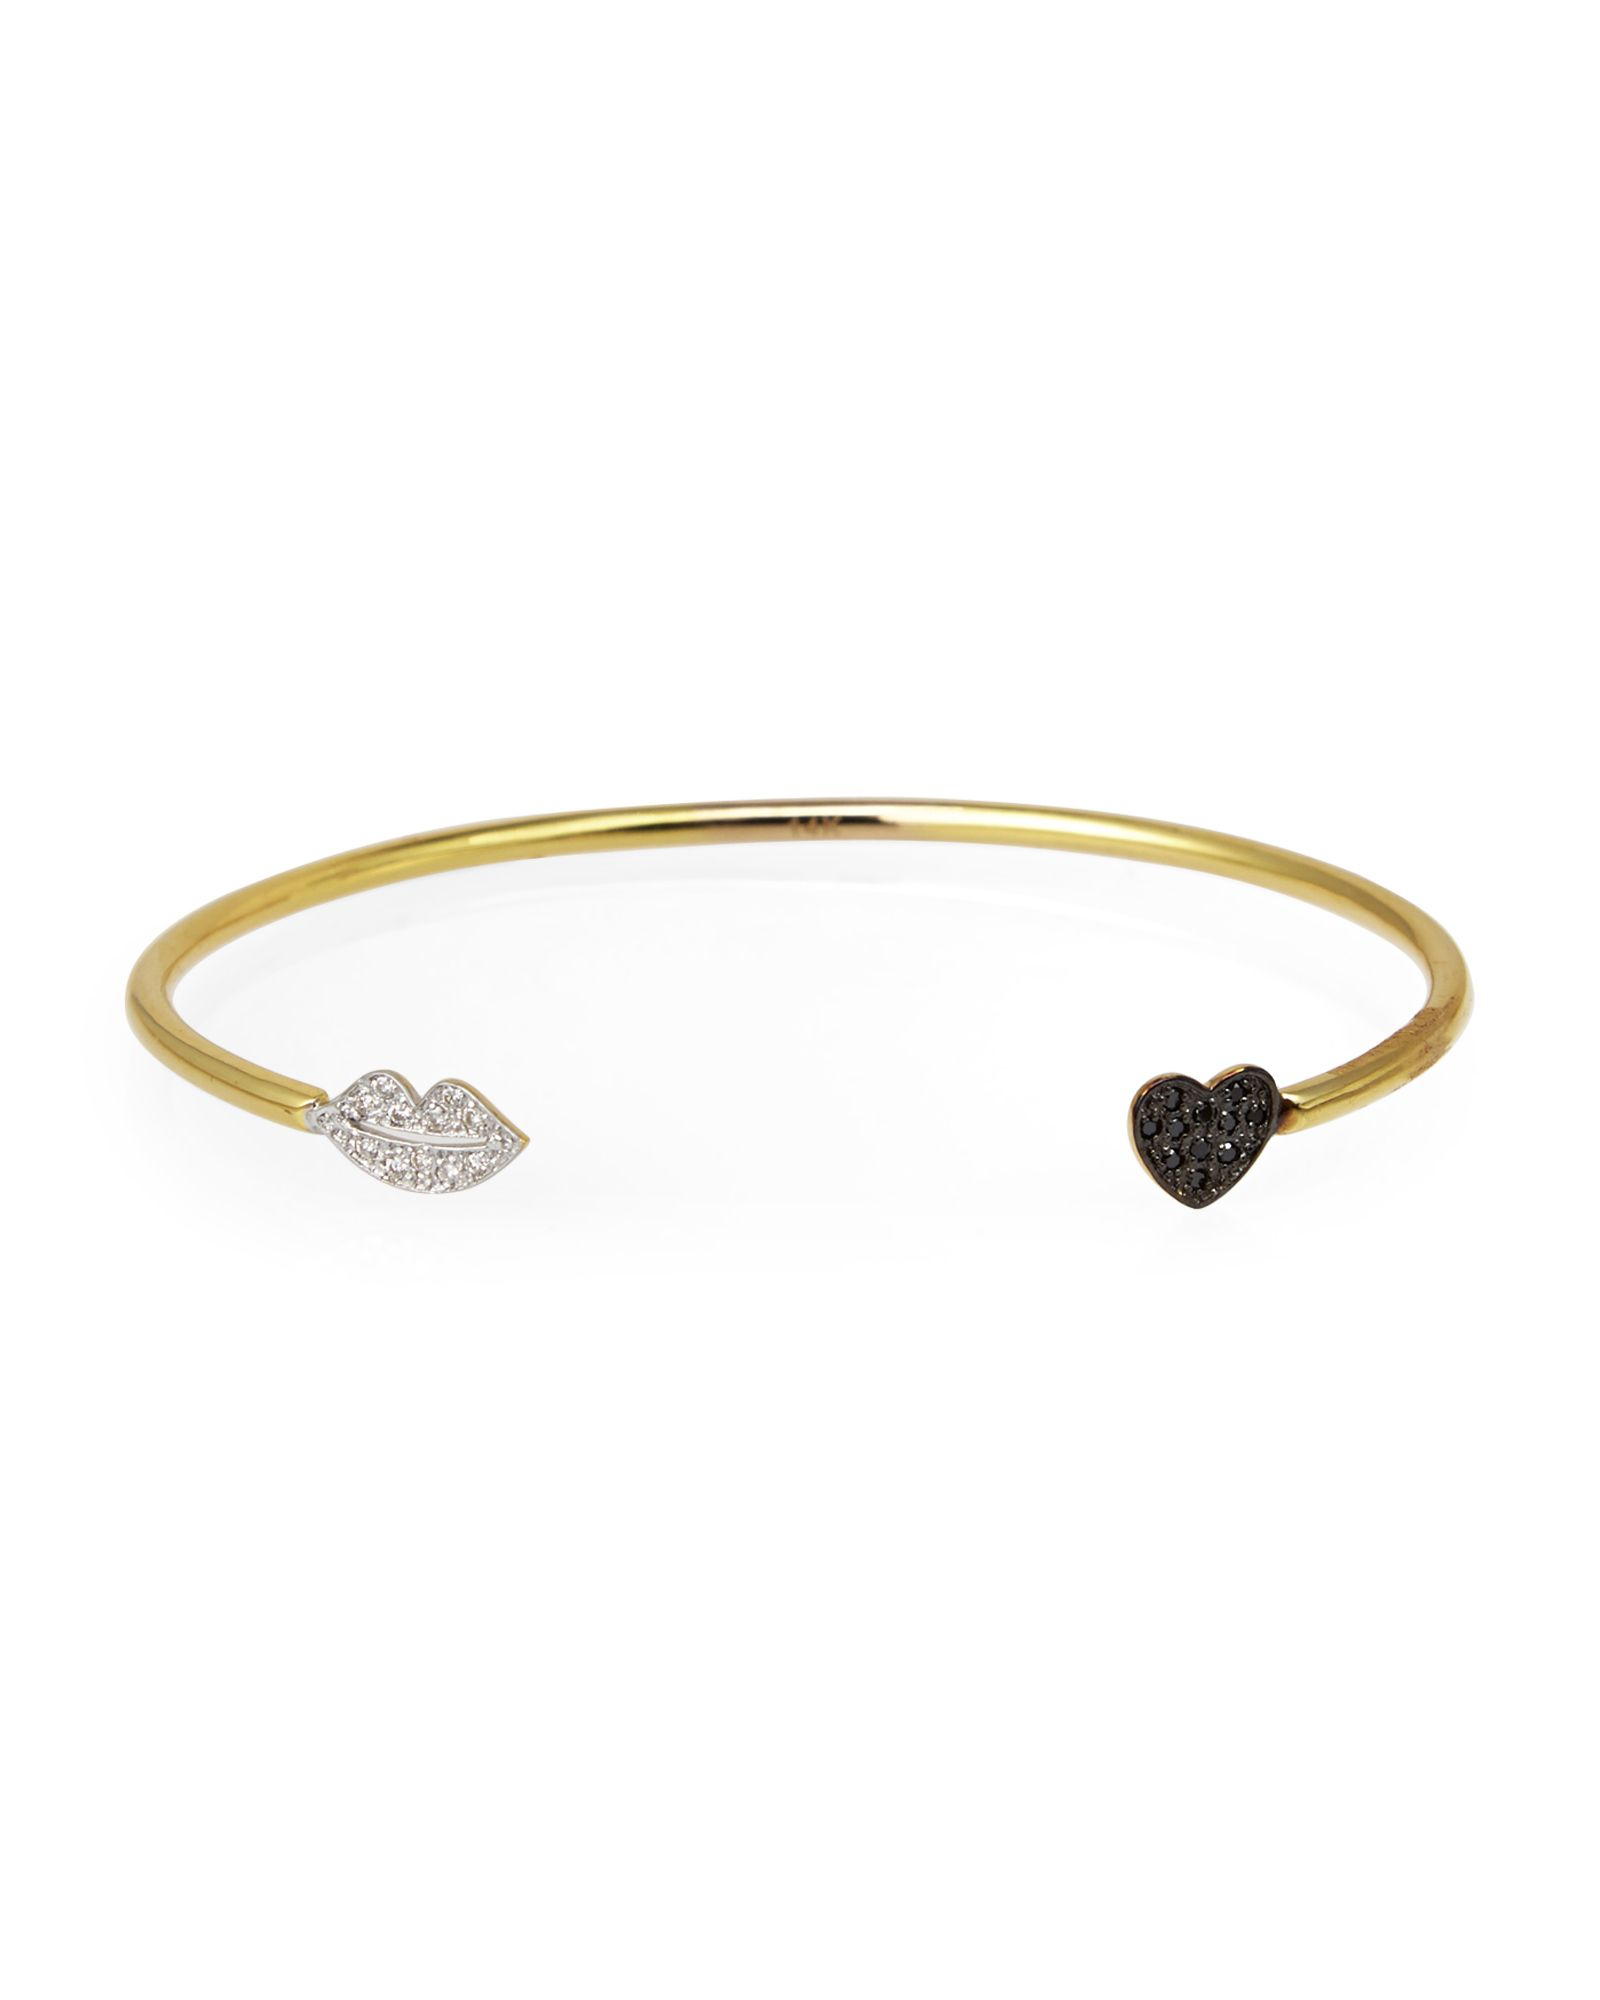 Kacey k gold lips u heart bracelet apparel u accessories